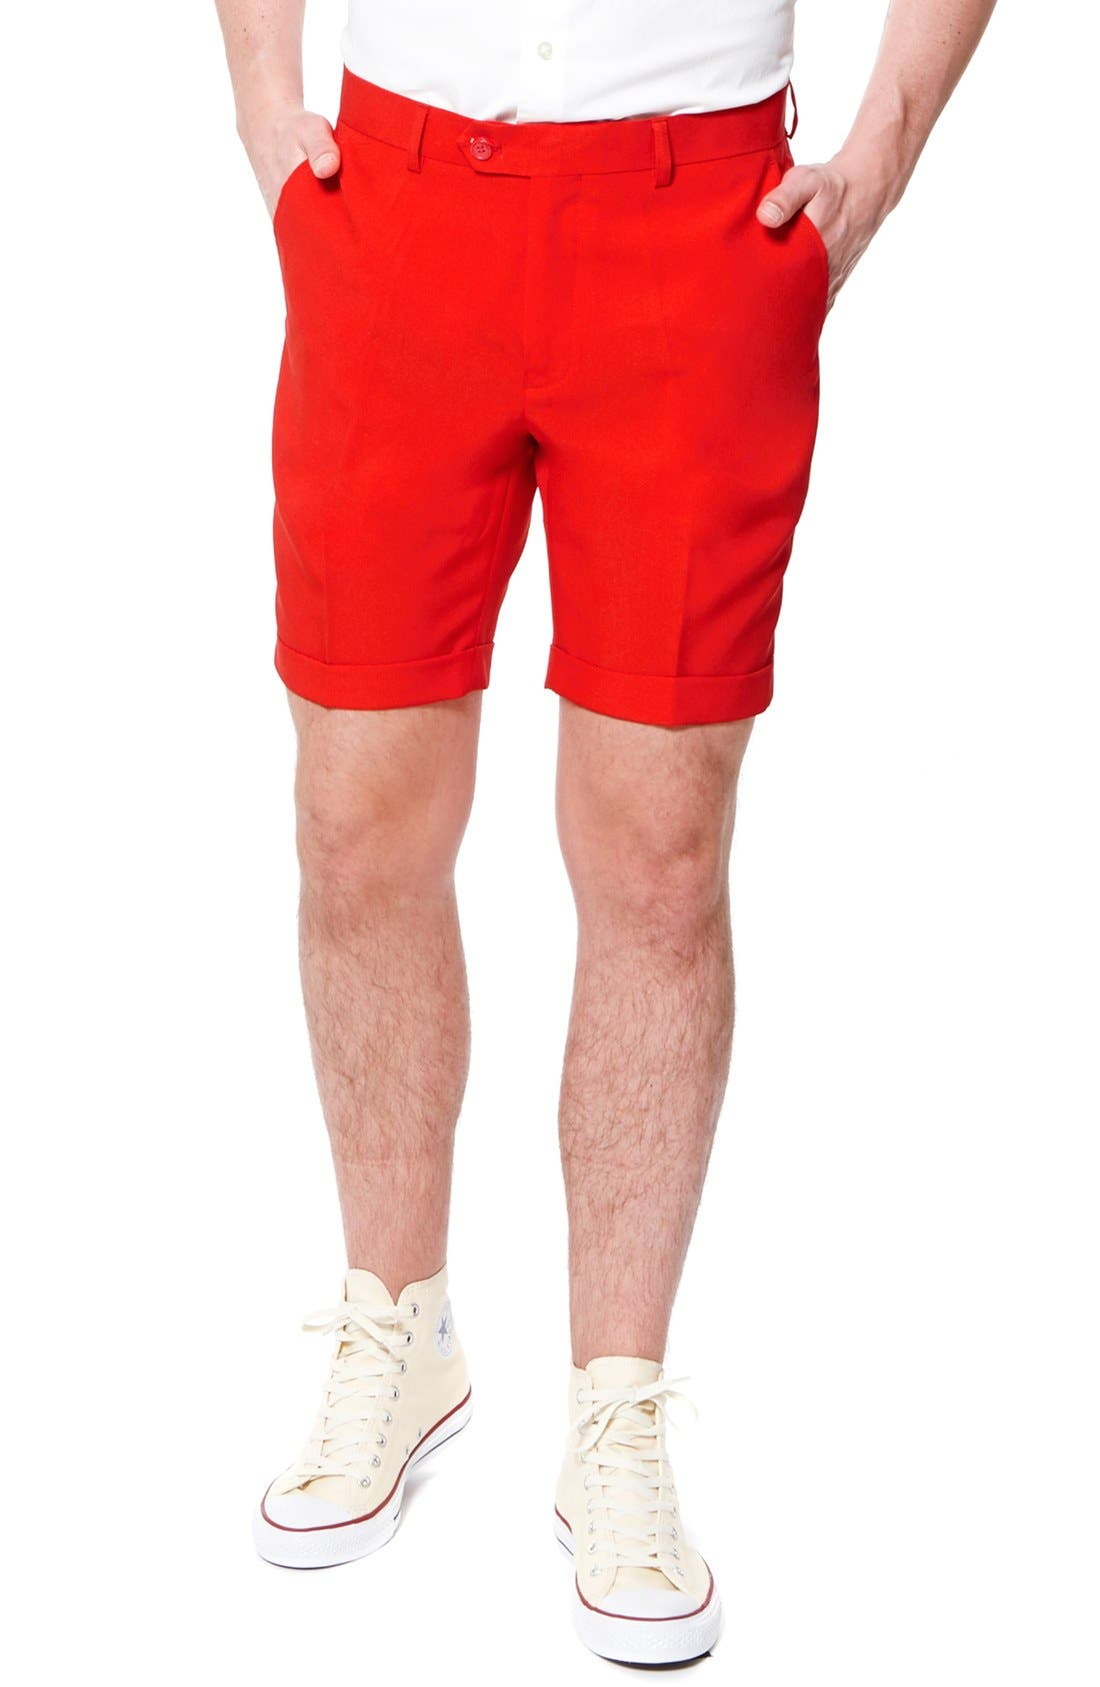 'Summer Red Devil' Trim Fit Short Suit with Tie,                             Alternate thumbnail 3, color,                             Medium Red